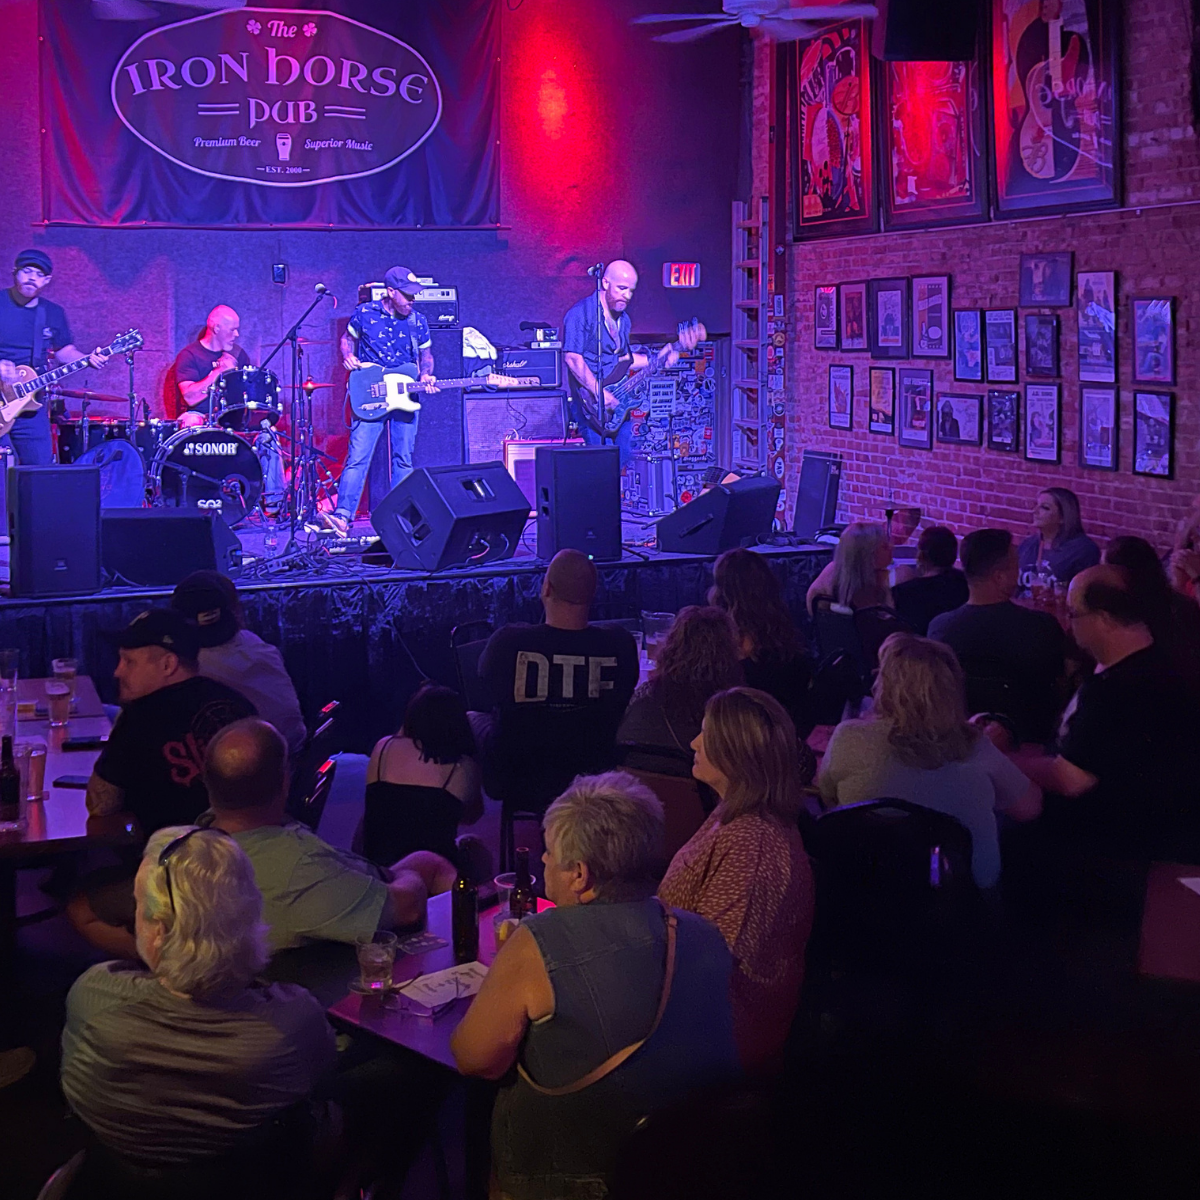 Live Music at the Iron Horse pub- Throttlebody entertains a great crowd